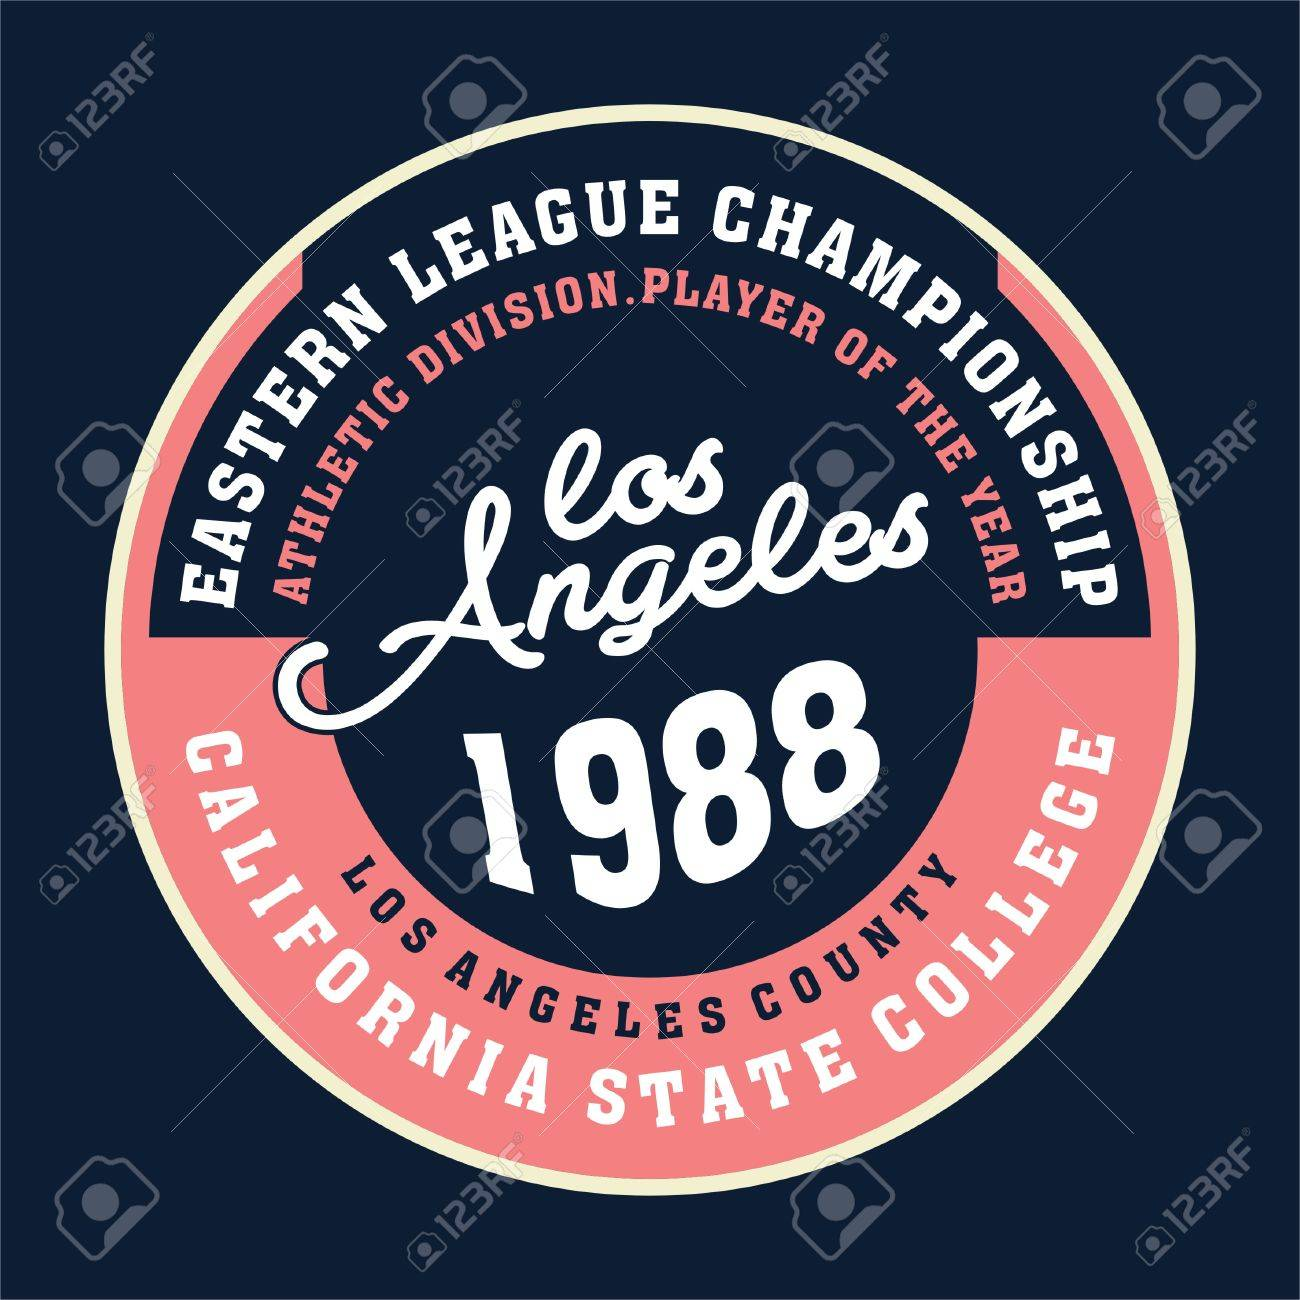 Design t shirts los angeles - Design Letters And Numbers Los Angeles Champion State For T Shirts Stock Vector 80036595